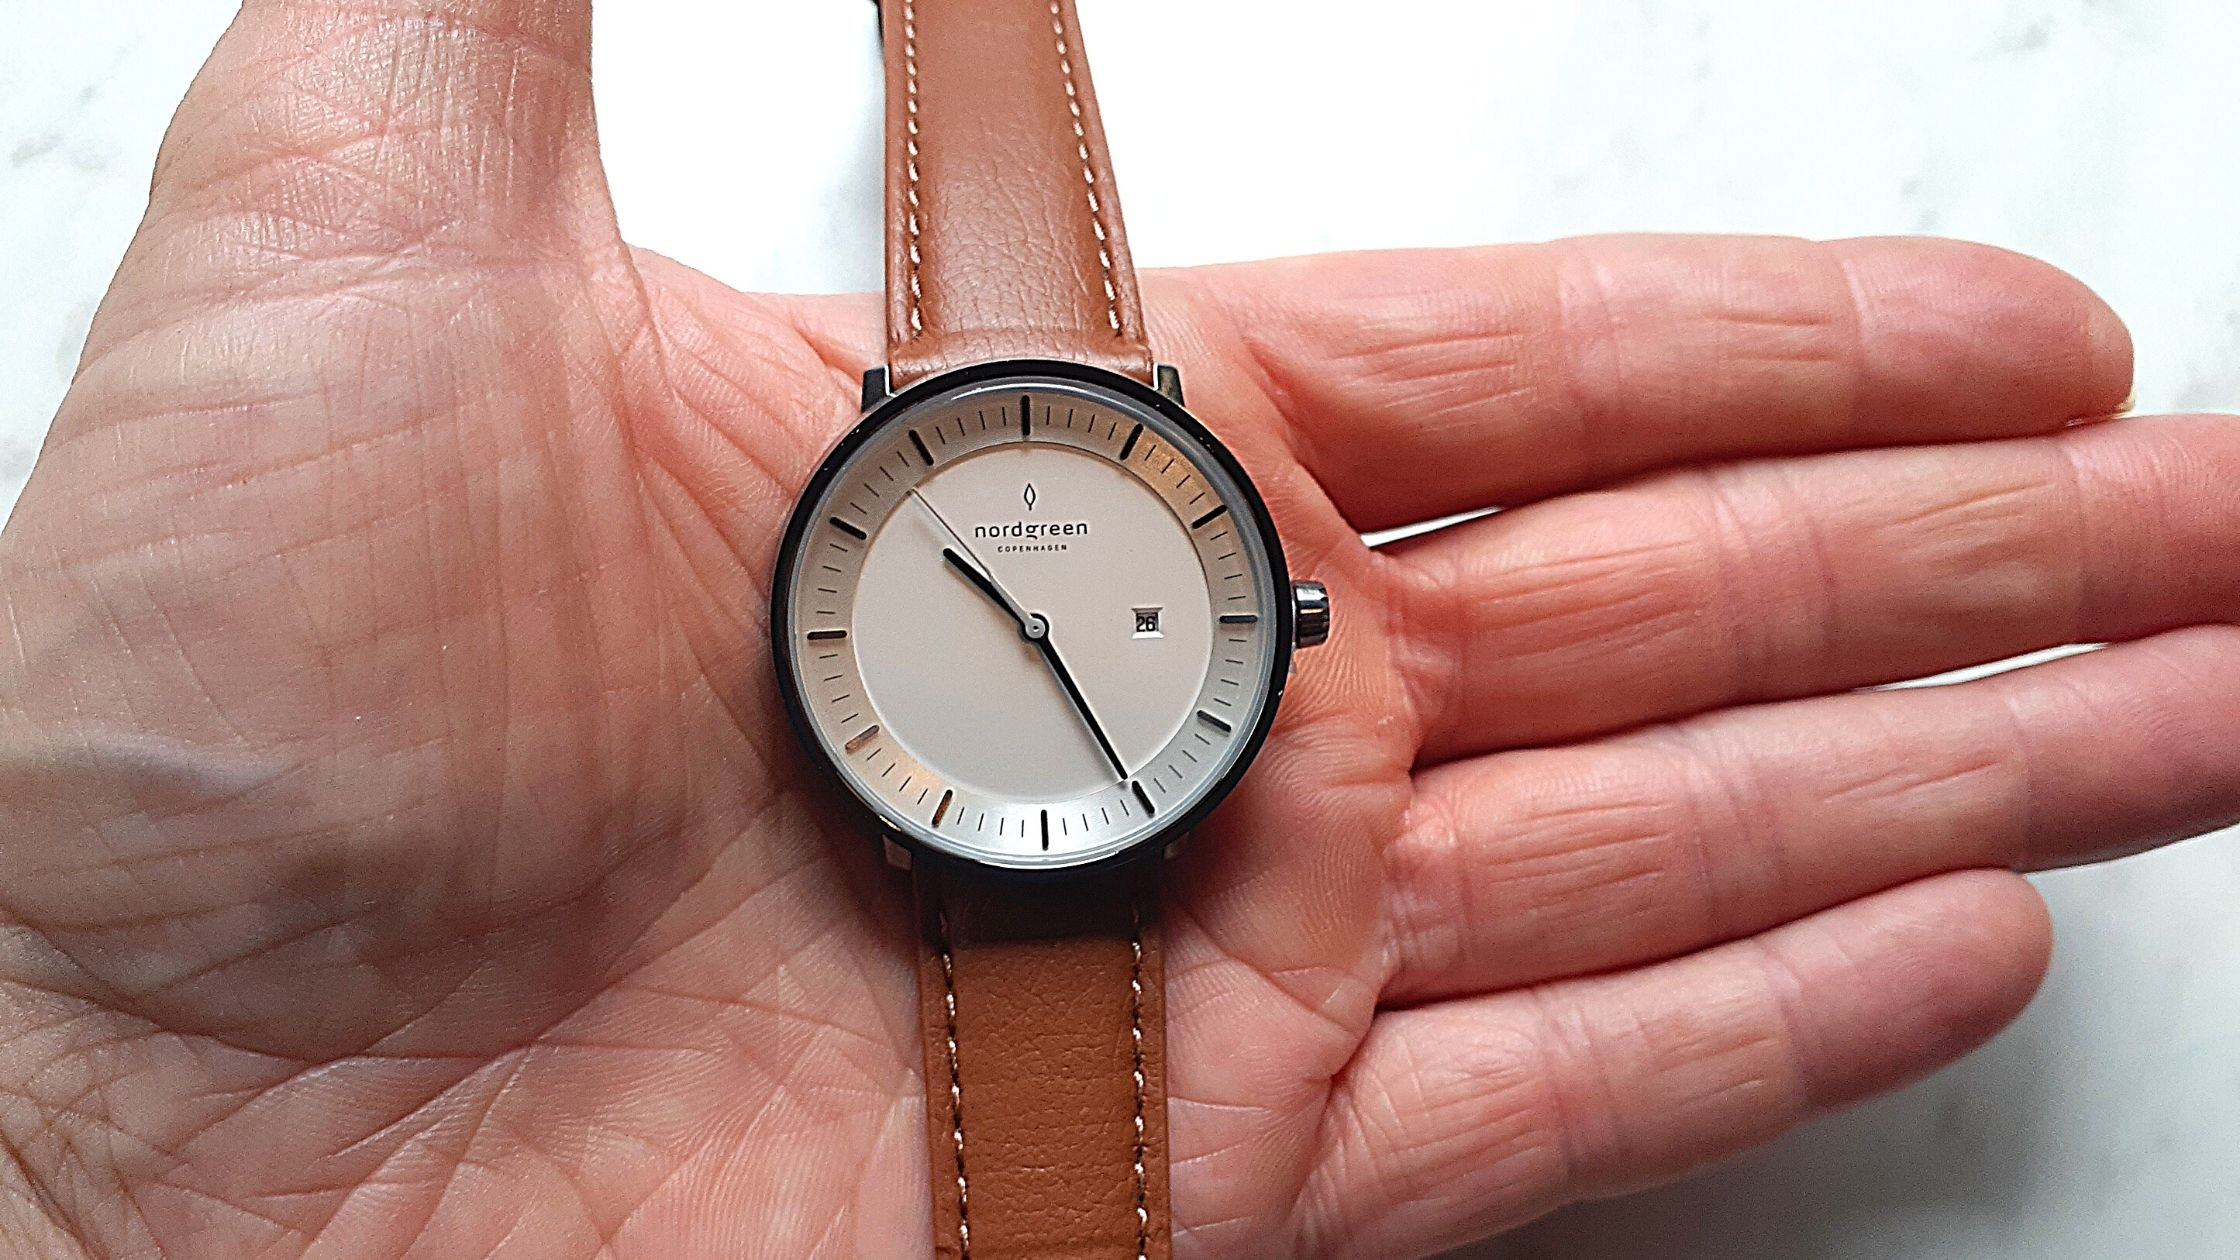 Nordgreen Philosopher vegan watch